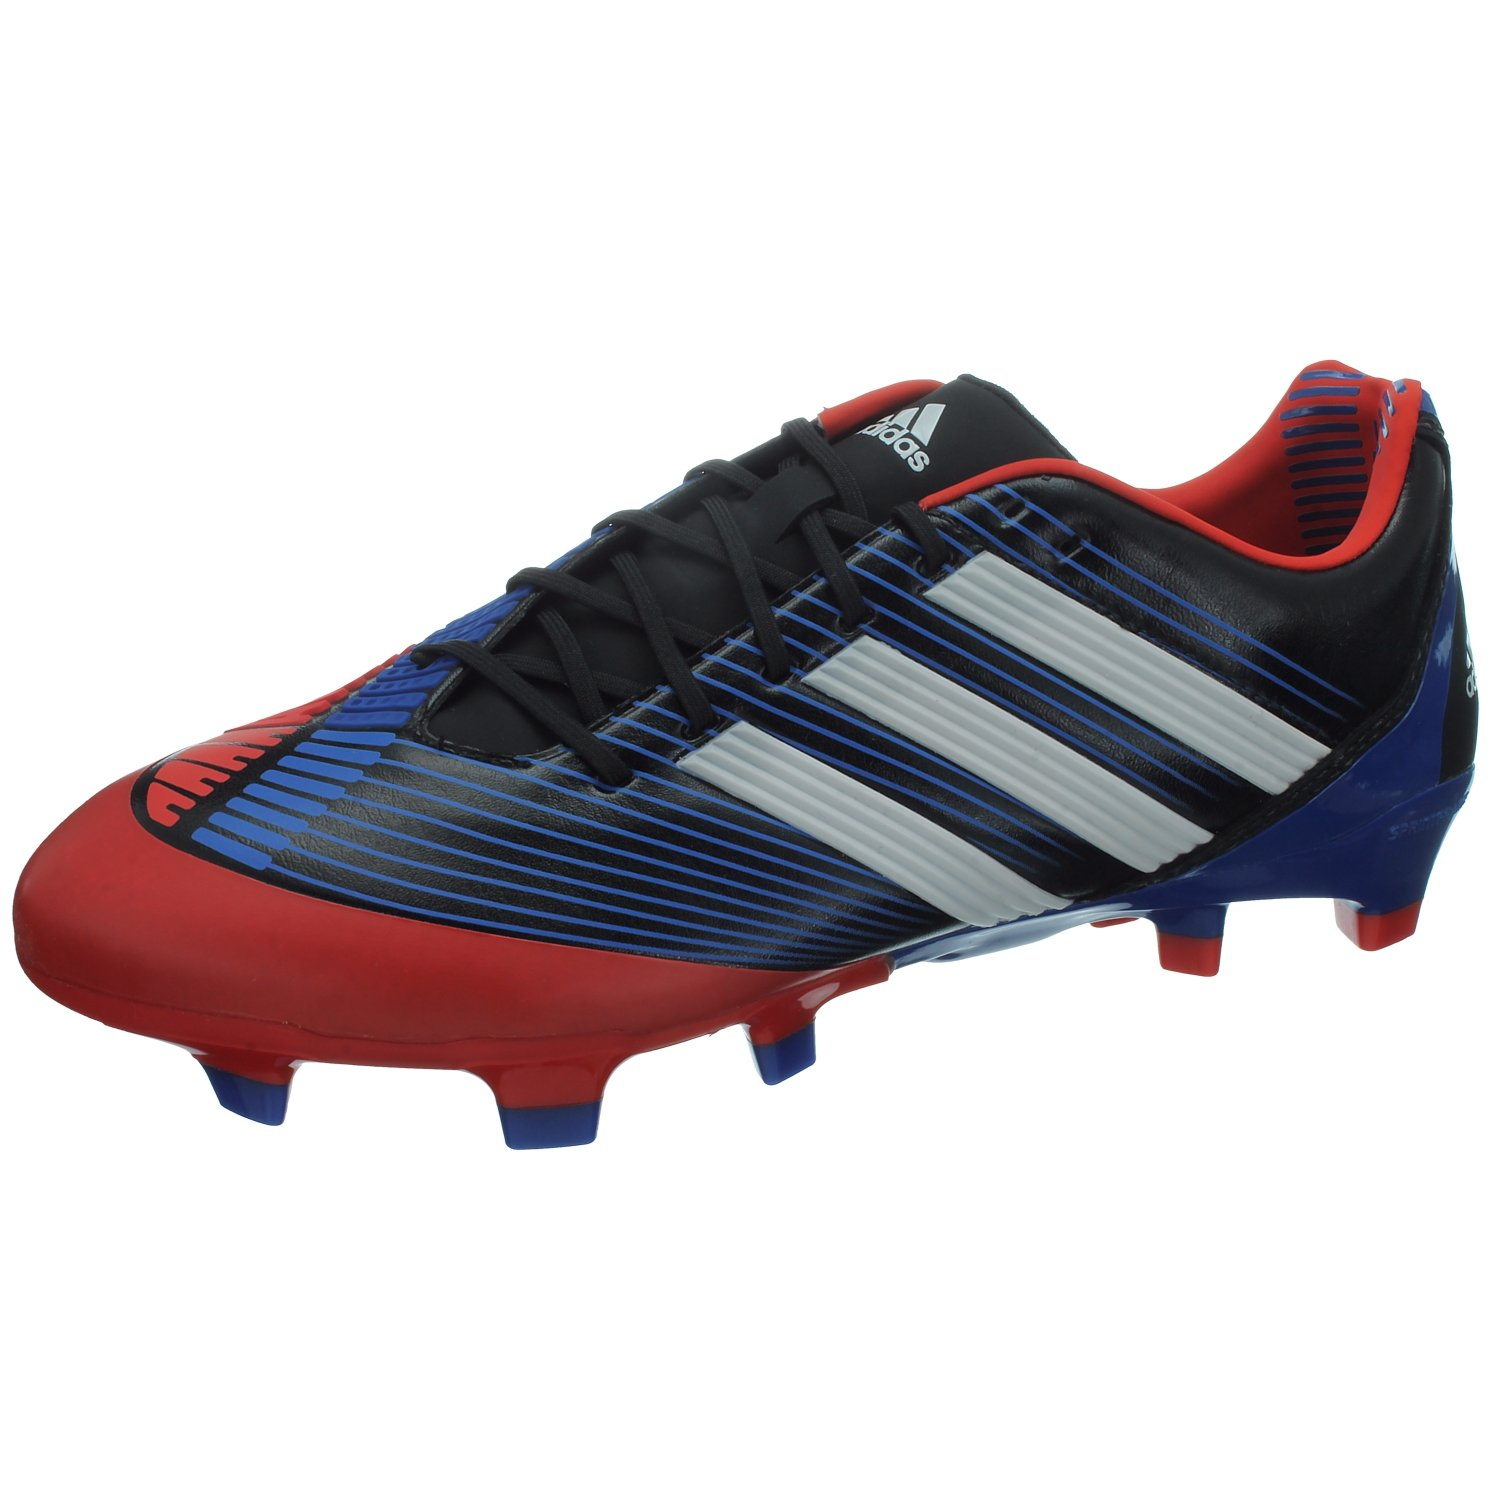 81f60dcd8ee2 ... performance predator incurza xt sg black mens shoes rugby boots adidas  pants sale 17af8 sale adidas predator incurza ii trx fg rugby adult black  white ...